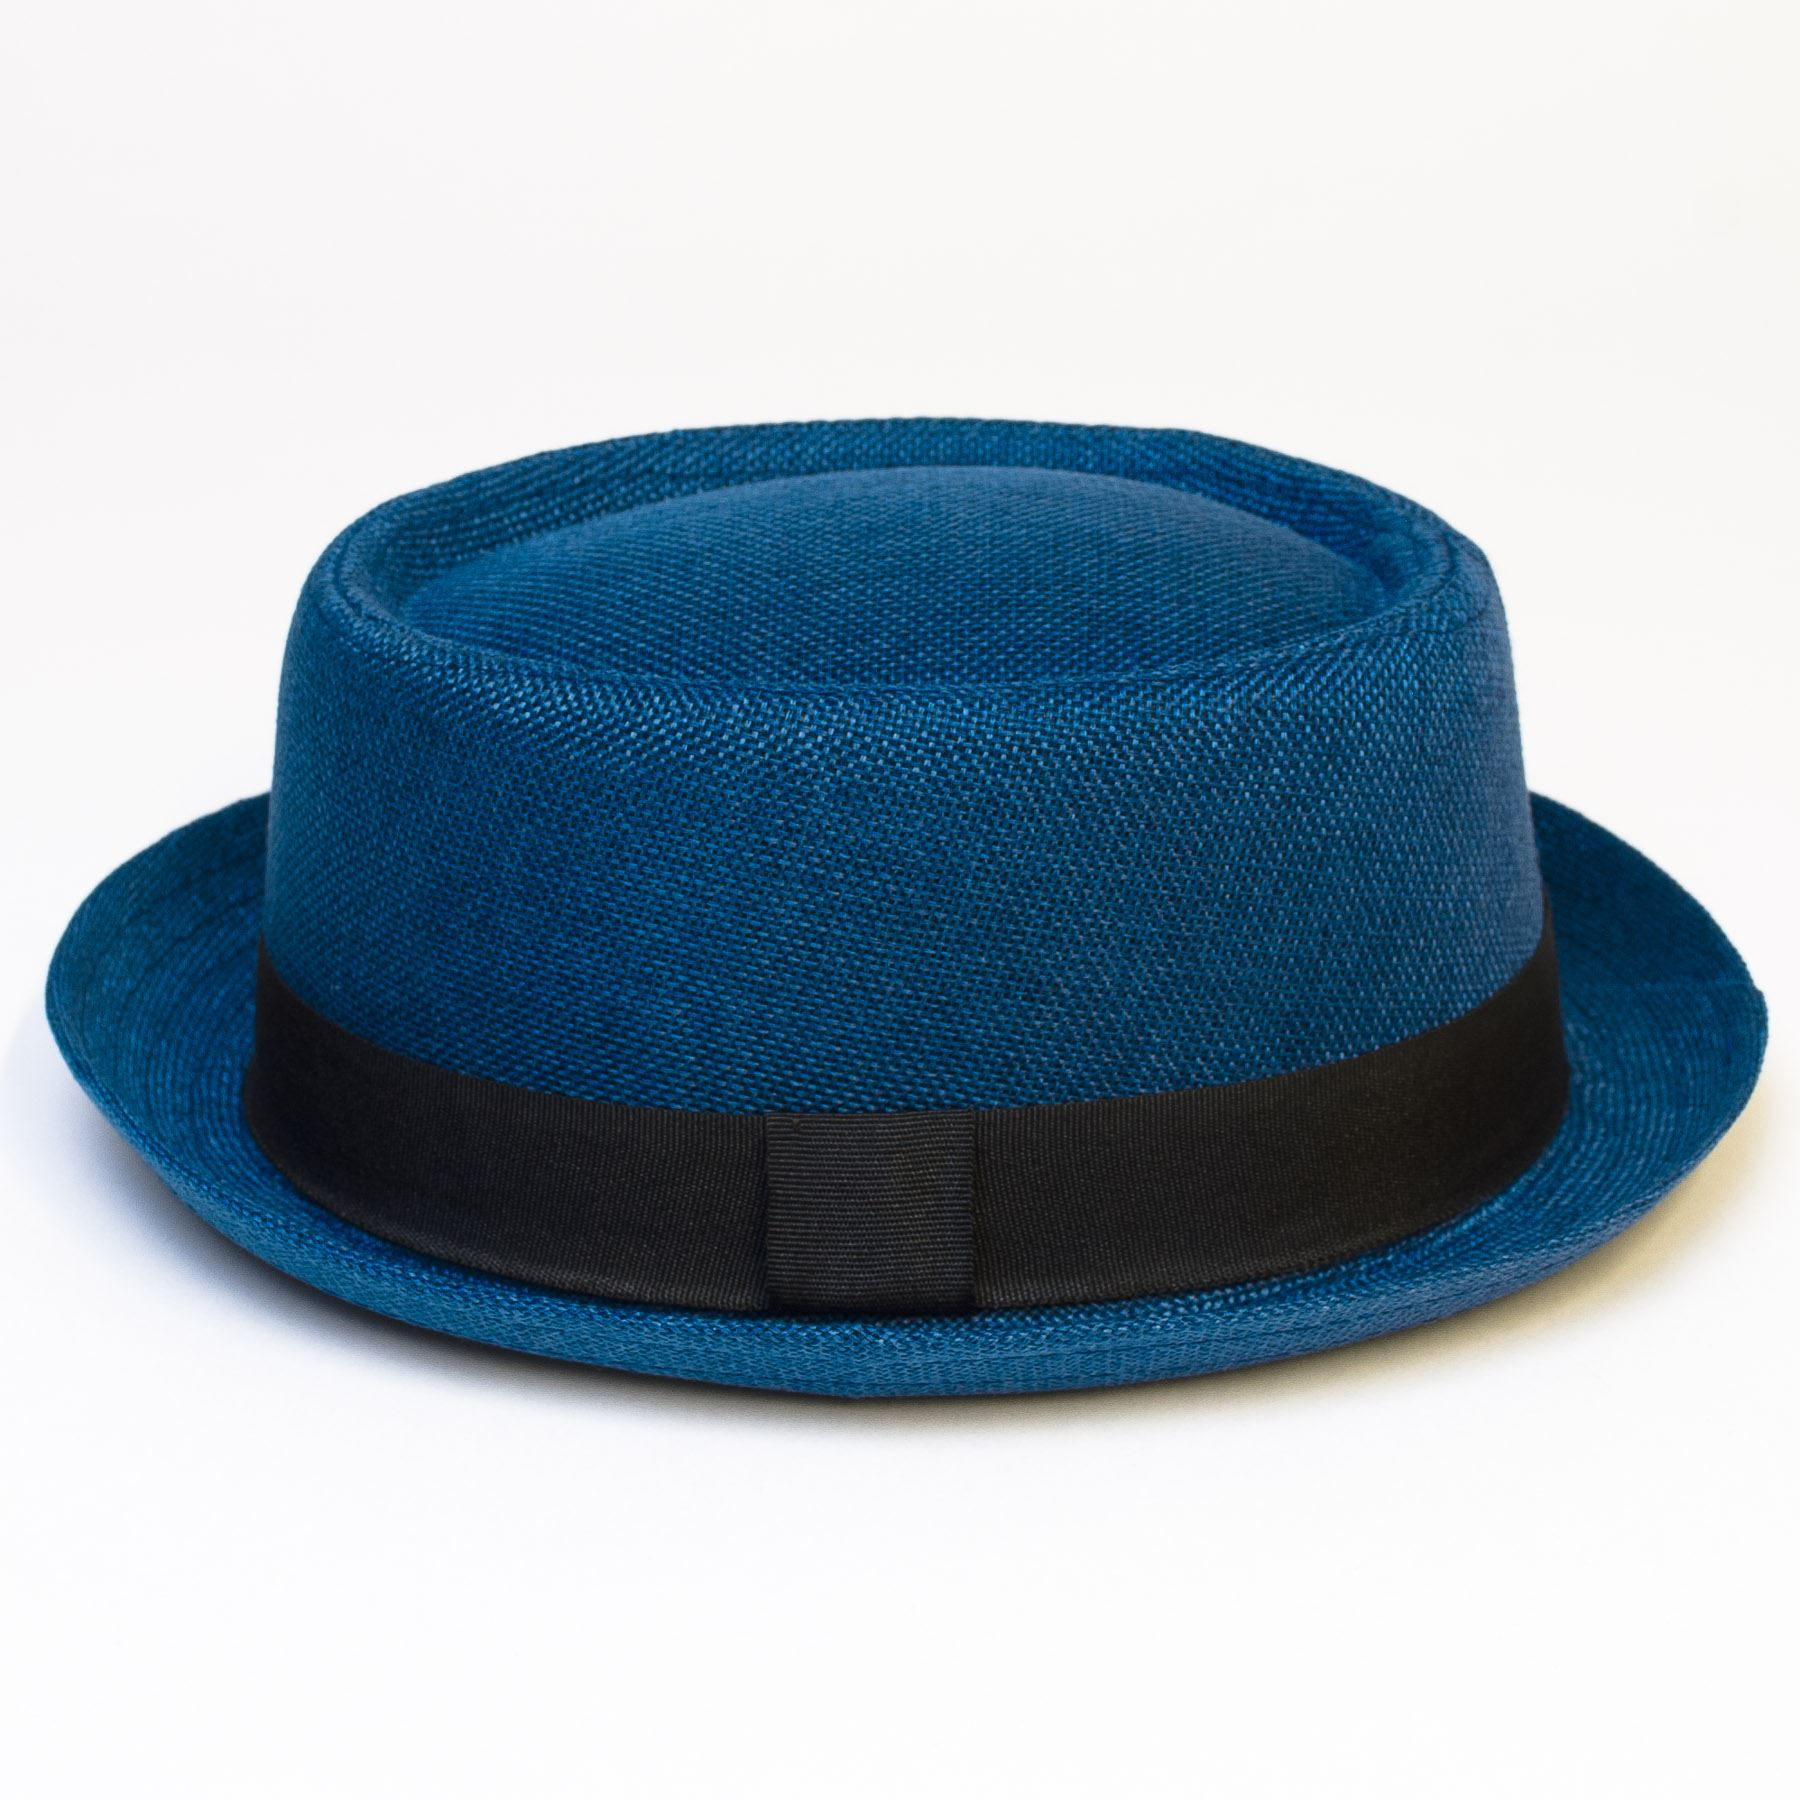 Pork-Pie-Hat-with-Black-Grosgrain-Band thumbnail 11